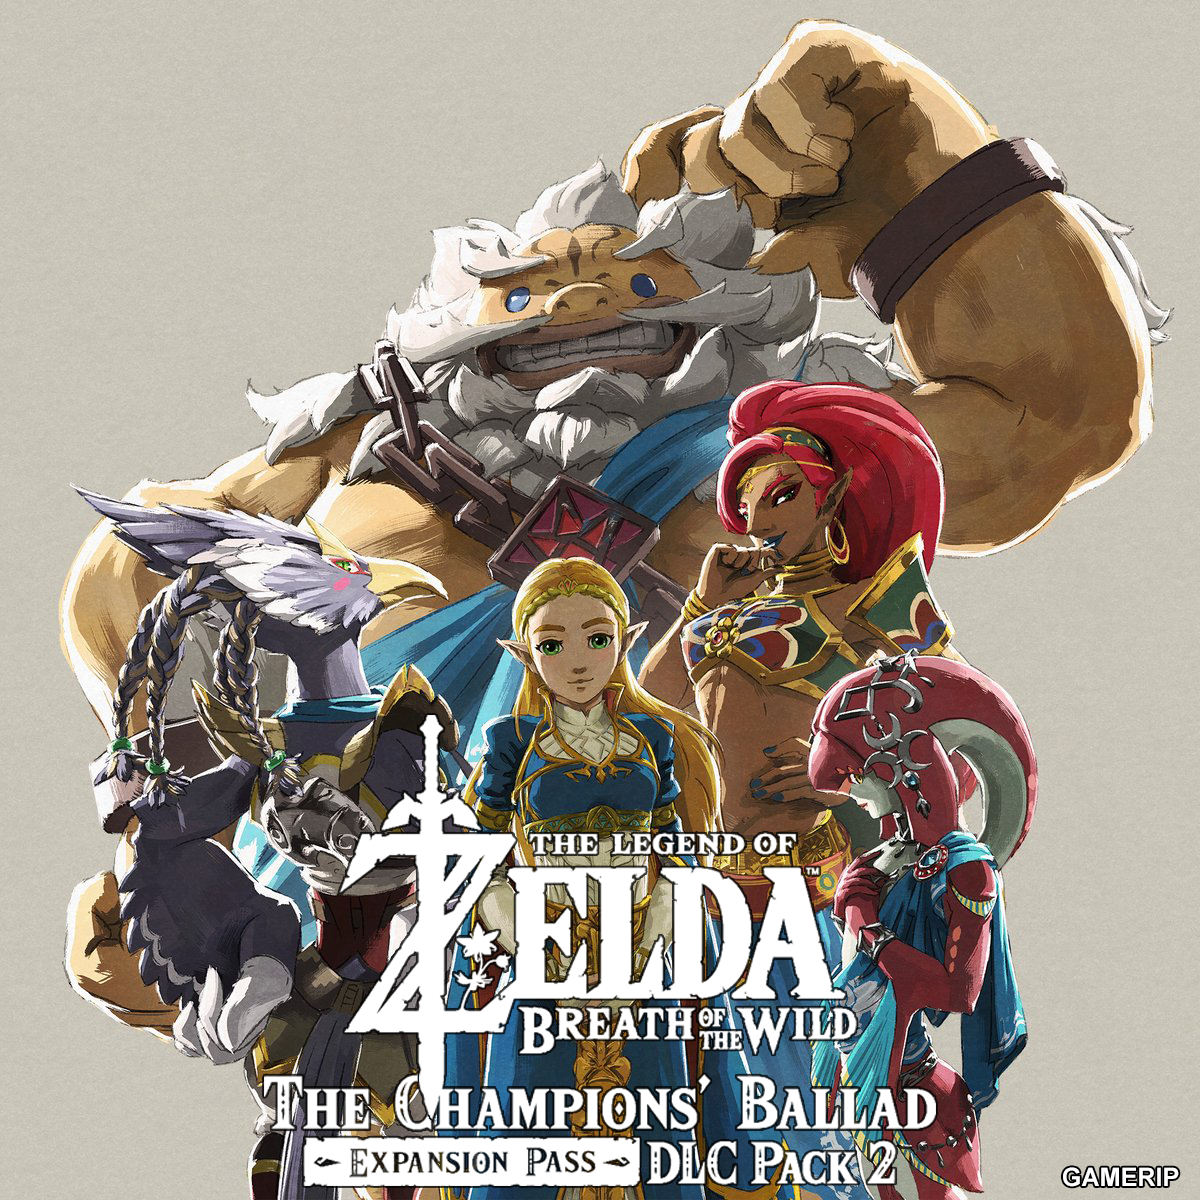 Legend Of Zelda The Breath Of The Wild The Champions Ballad Soundtrack Mp3 Download Legend Of Zelda The Breath Of The Wild The Champions Ballad Soundtrack Soundtracks For Free